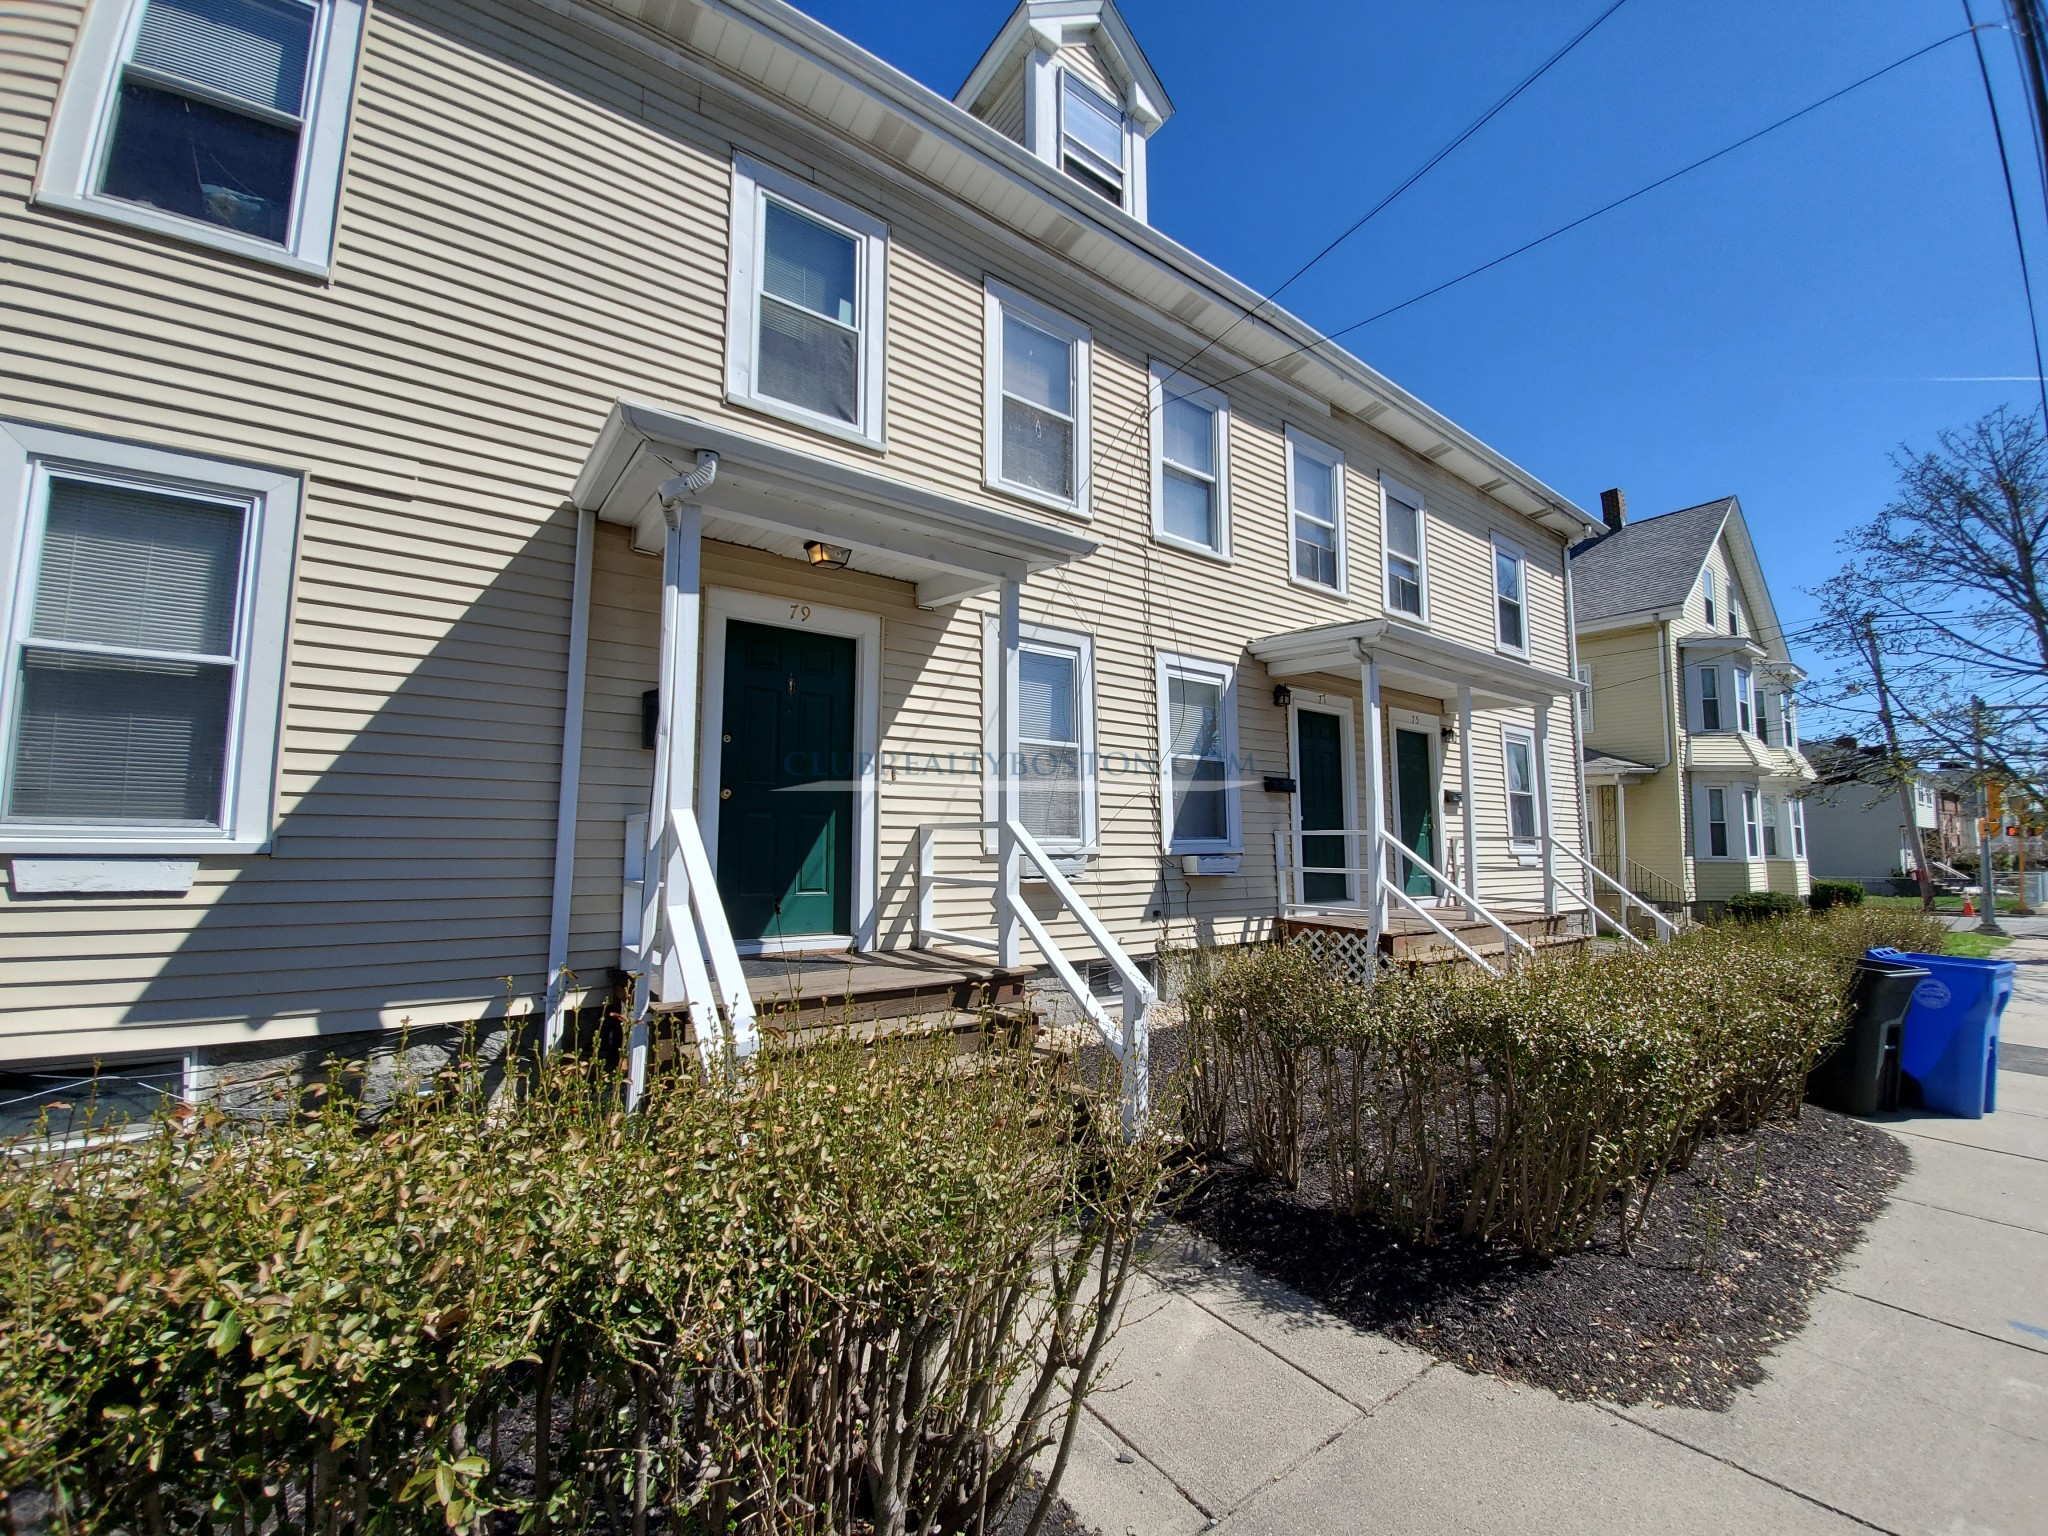 4 bed on 2 floors~townhouse style~Laundry~Parking! South Waltham